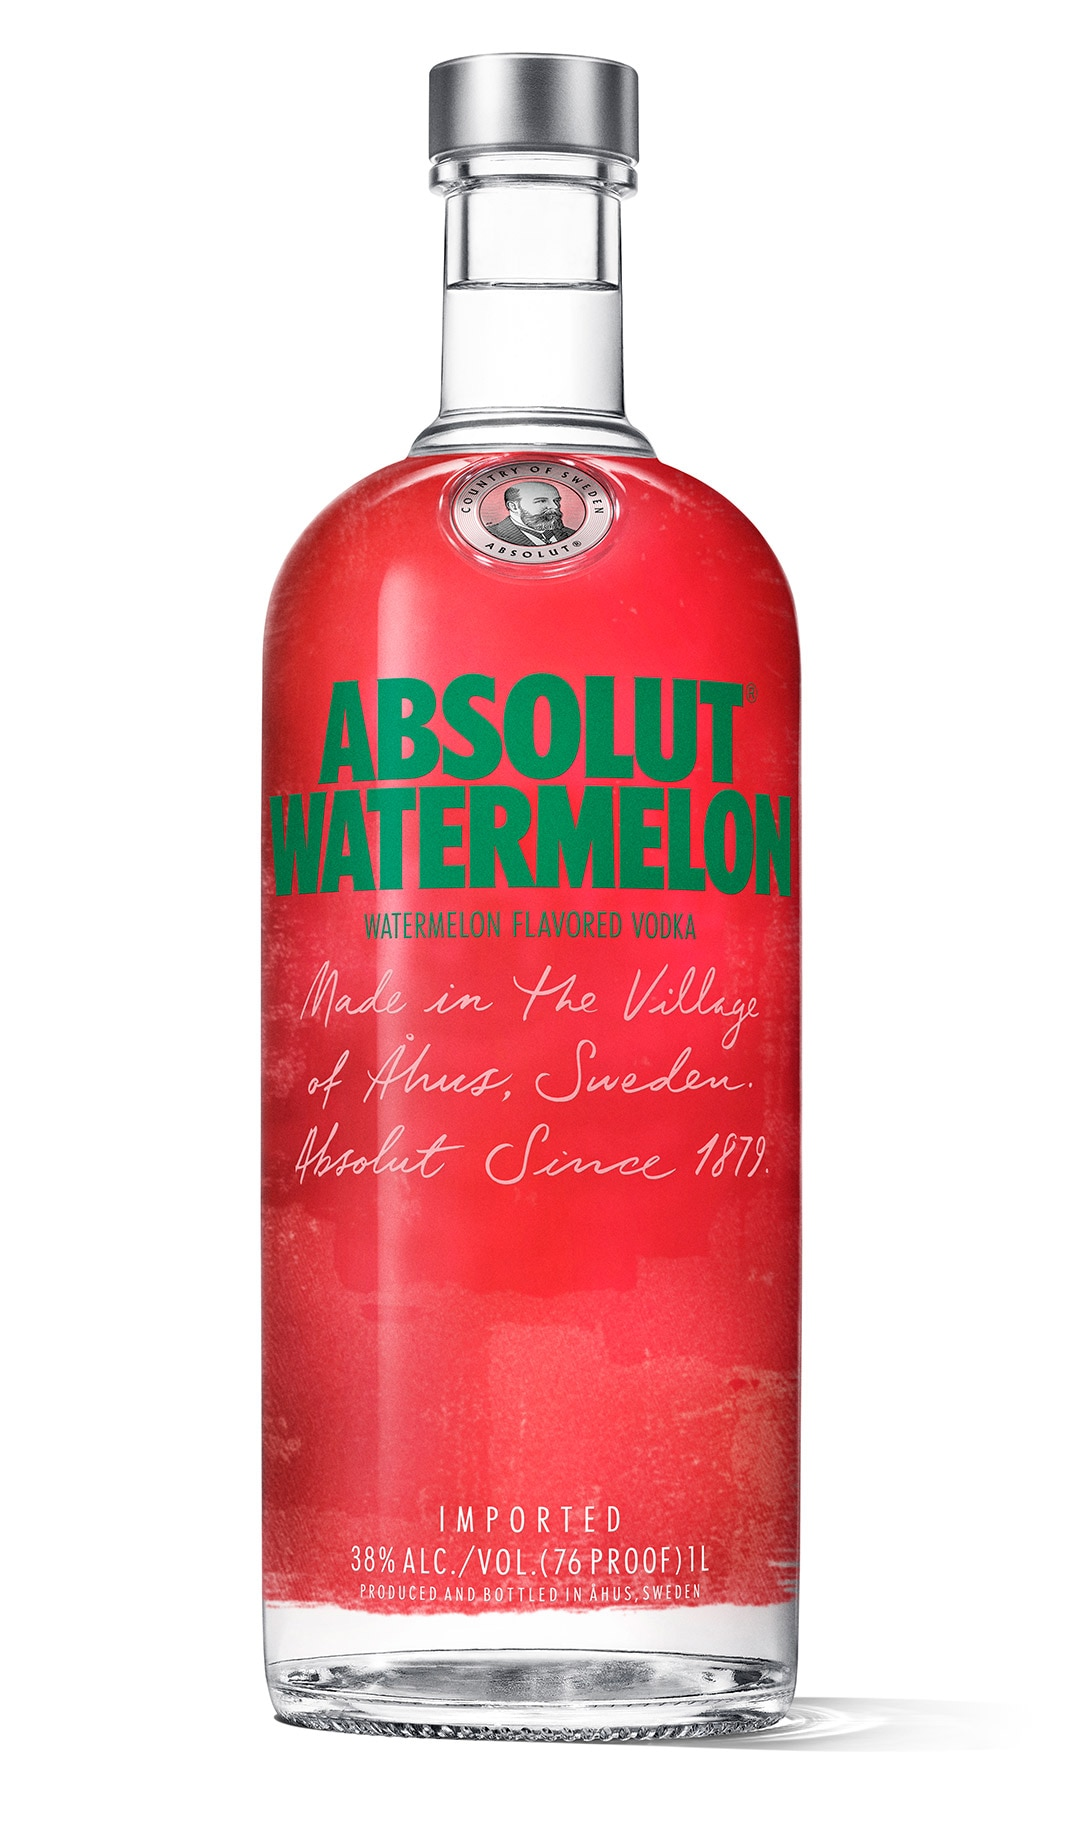 Absolut Watermelon